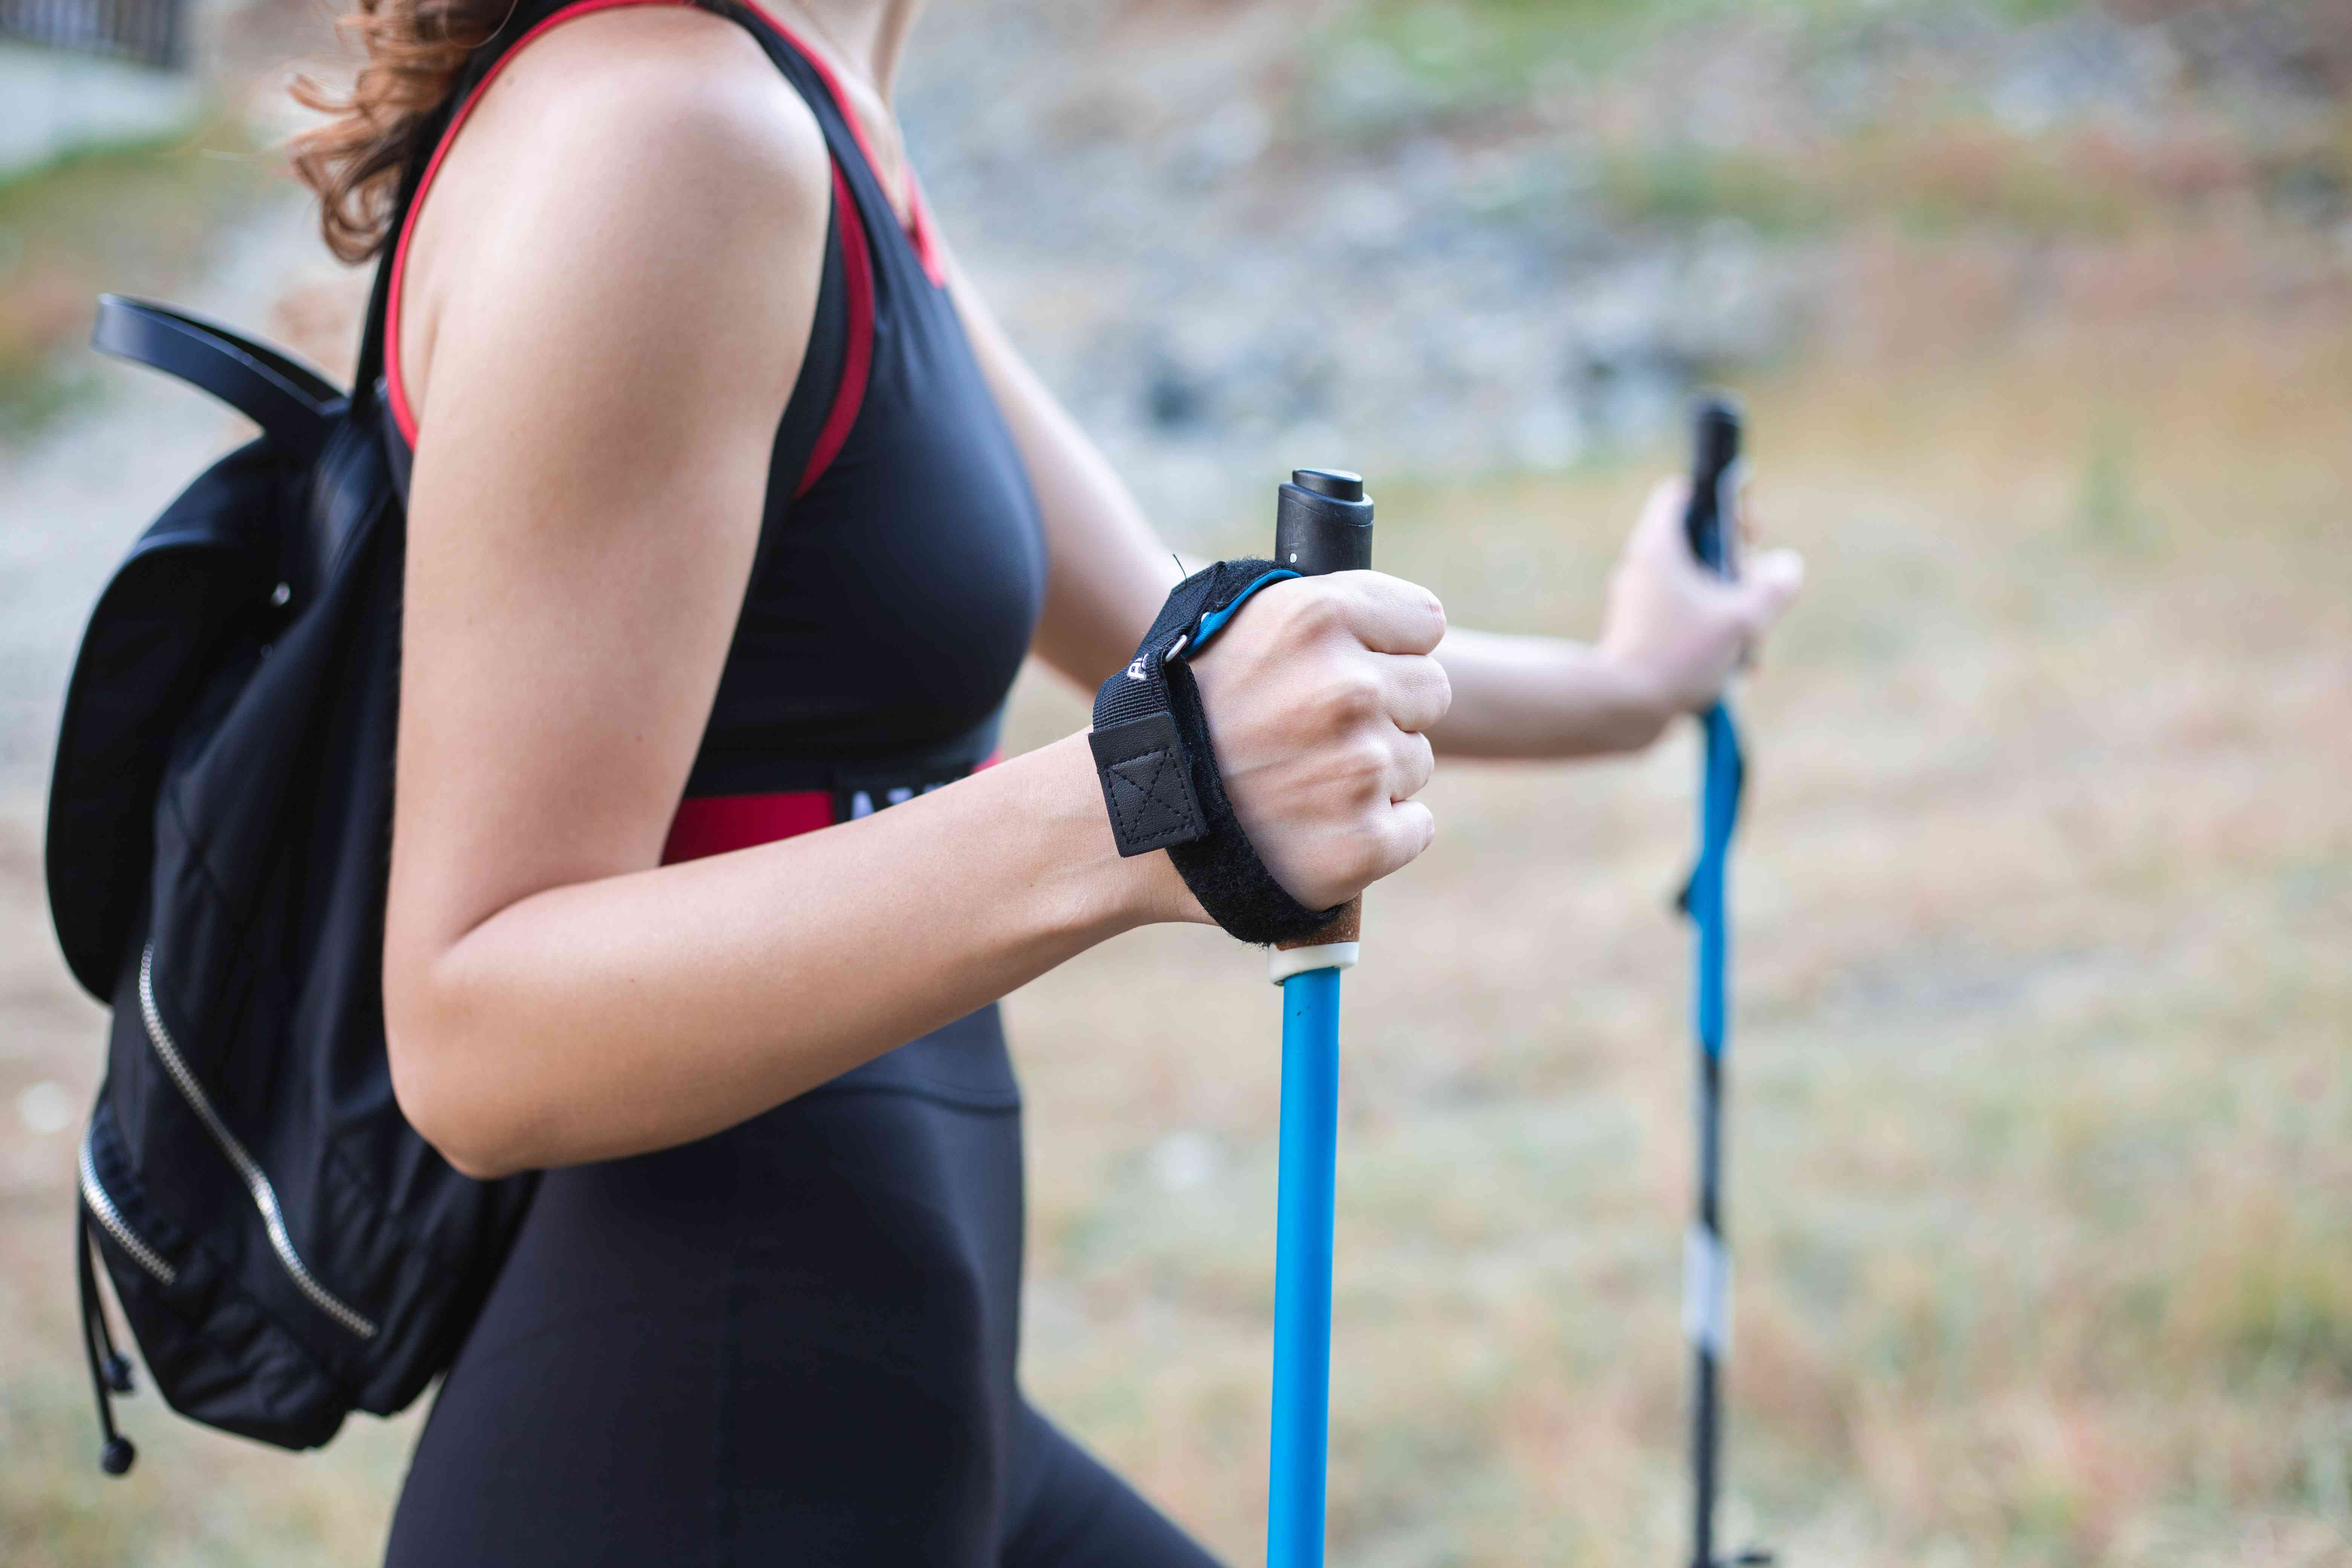 woman in workout clothes and backpack uses blue walking poles on outside walk